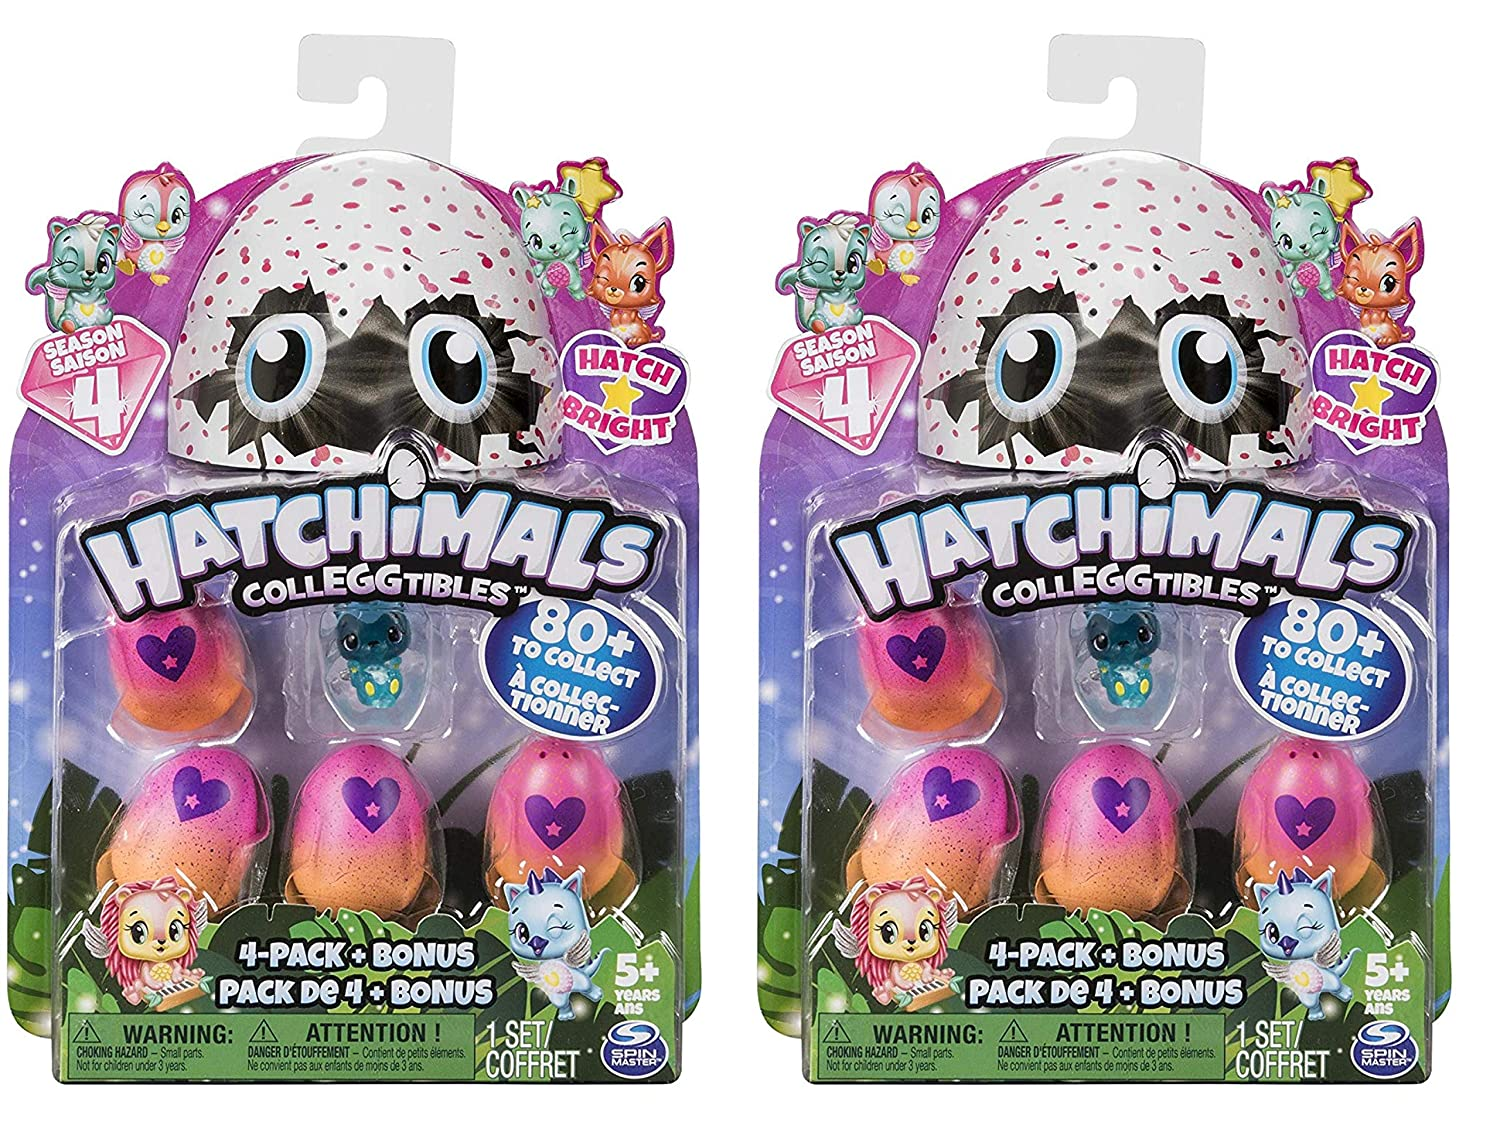 Glitter 2-Pack Collectible Playset Girls and Boys and Limited Edition Surprises Hatchimals CollEGGtibles Season 4 Kid/'s Toys Metallic Glow-in-The-Dark- Fuzzy